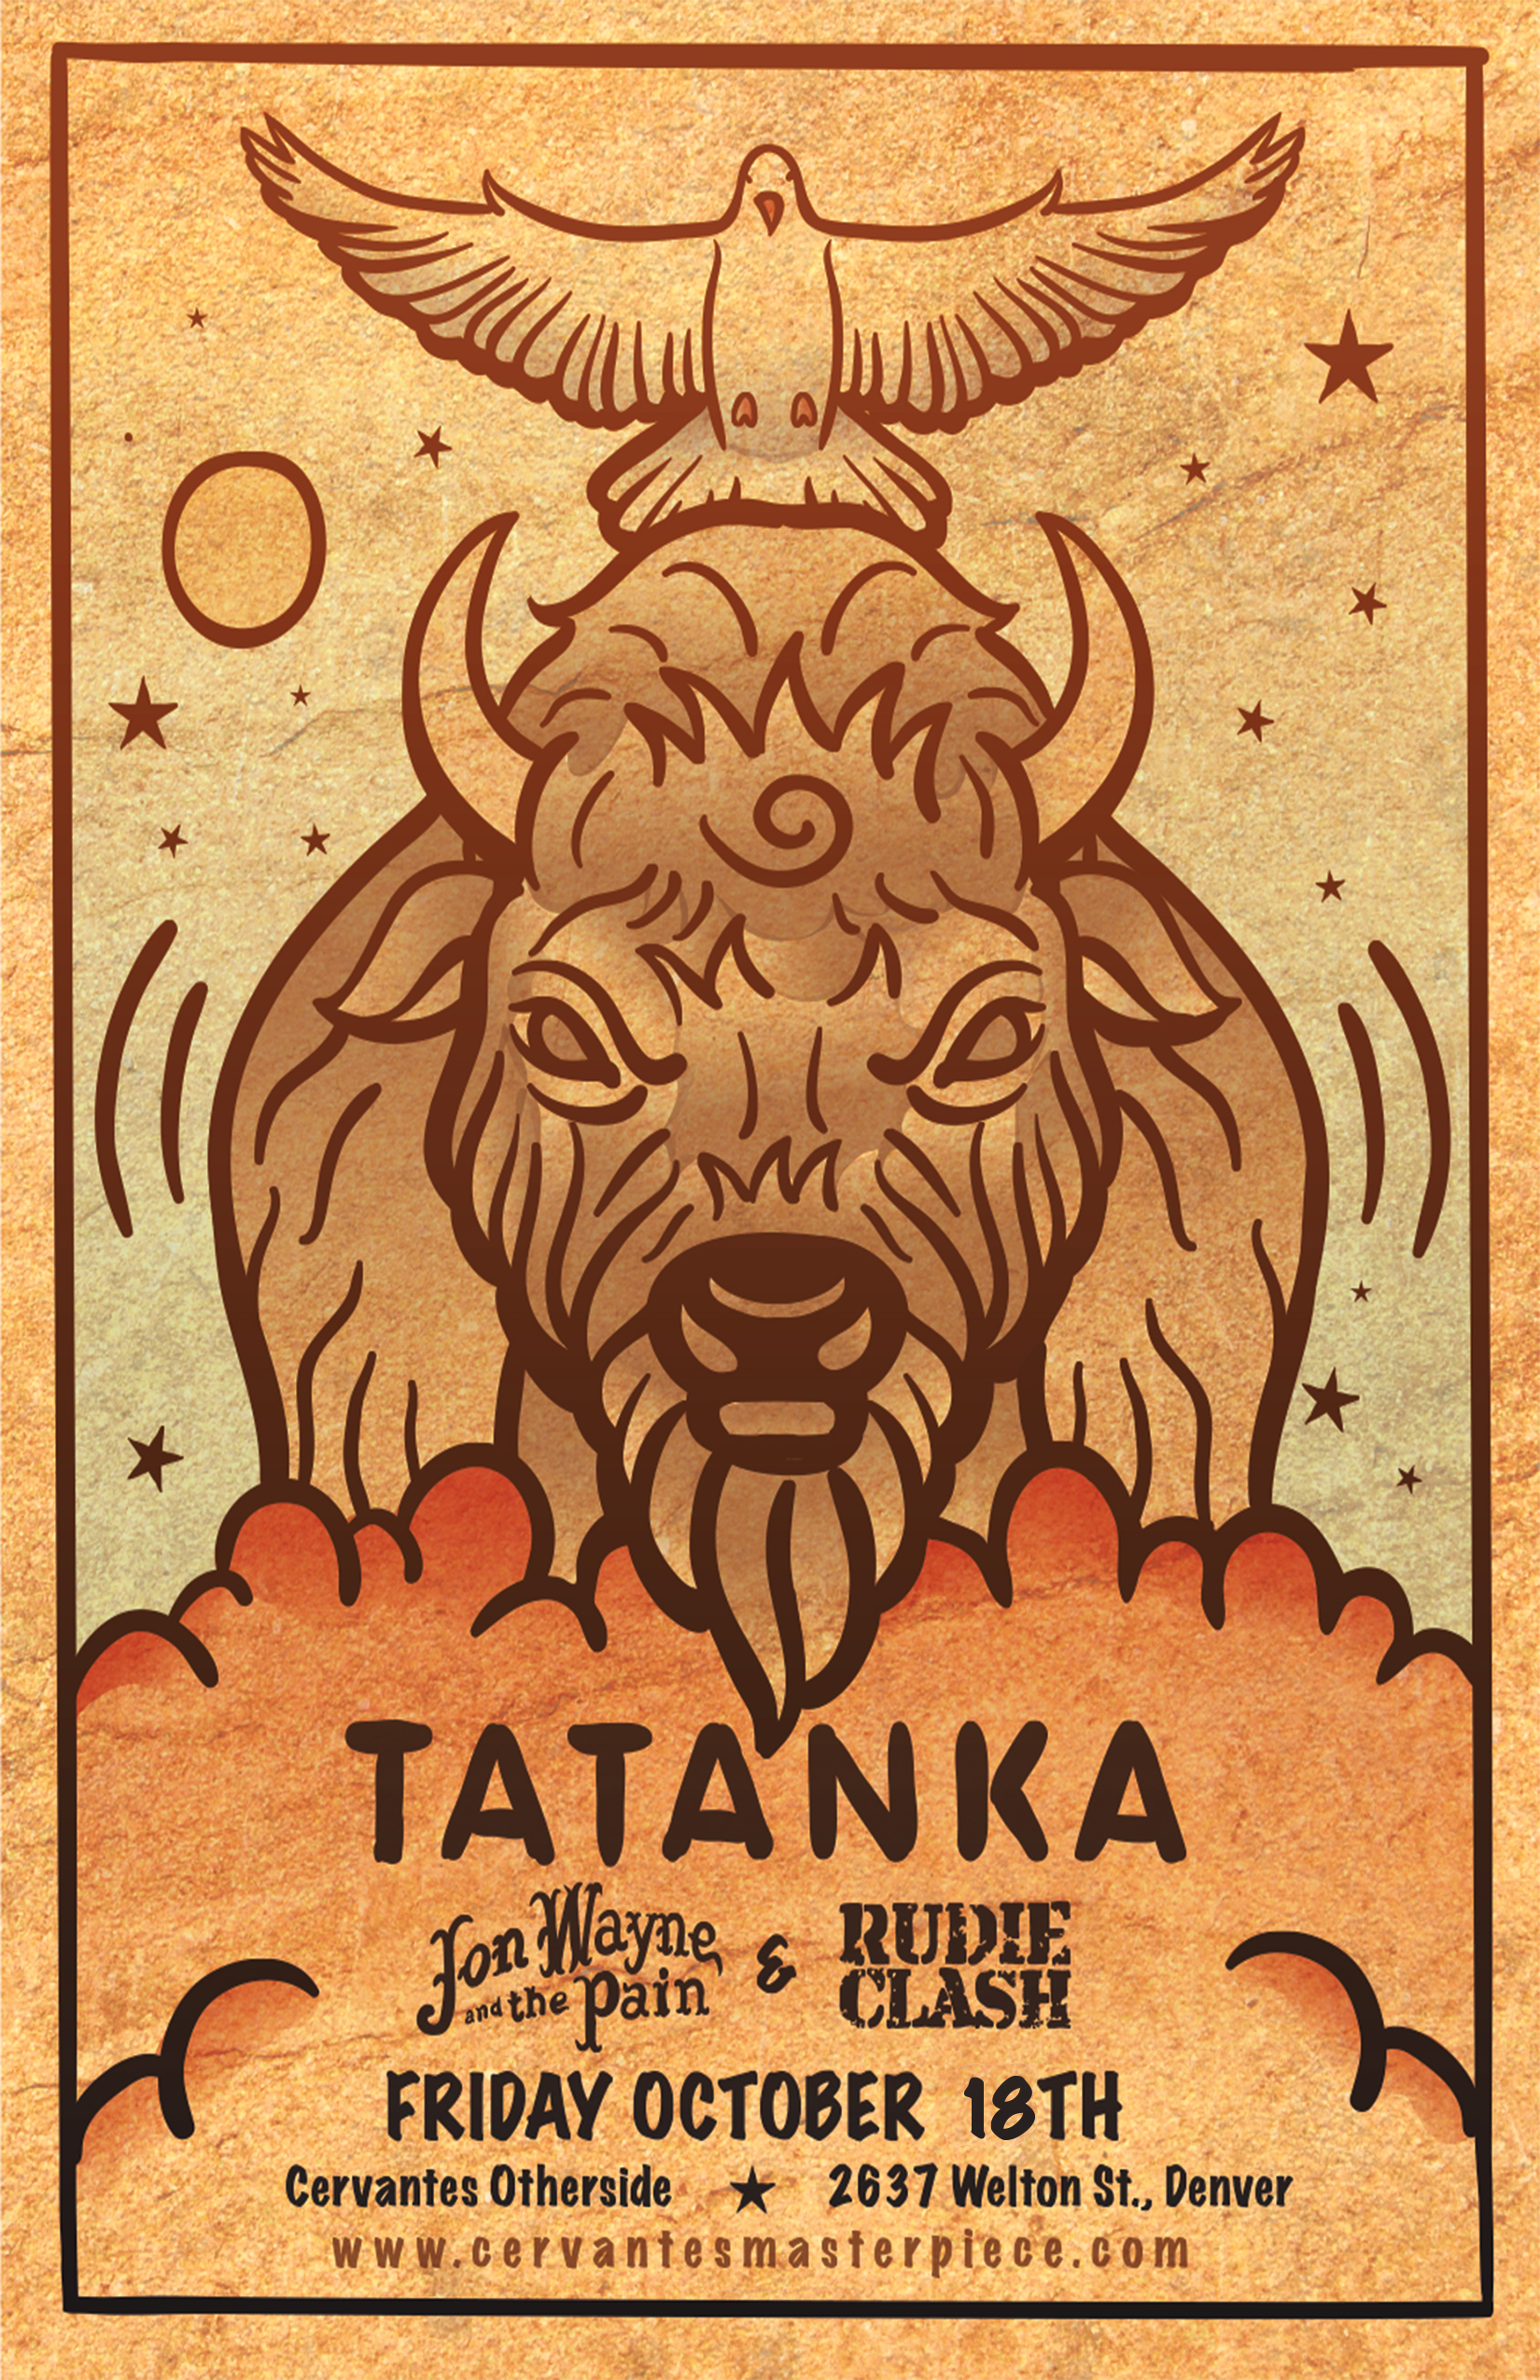 Tatanka-October-18th-Poster.jpg